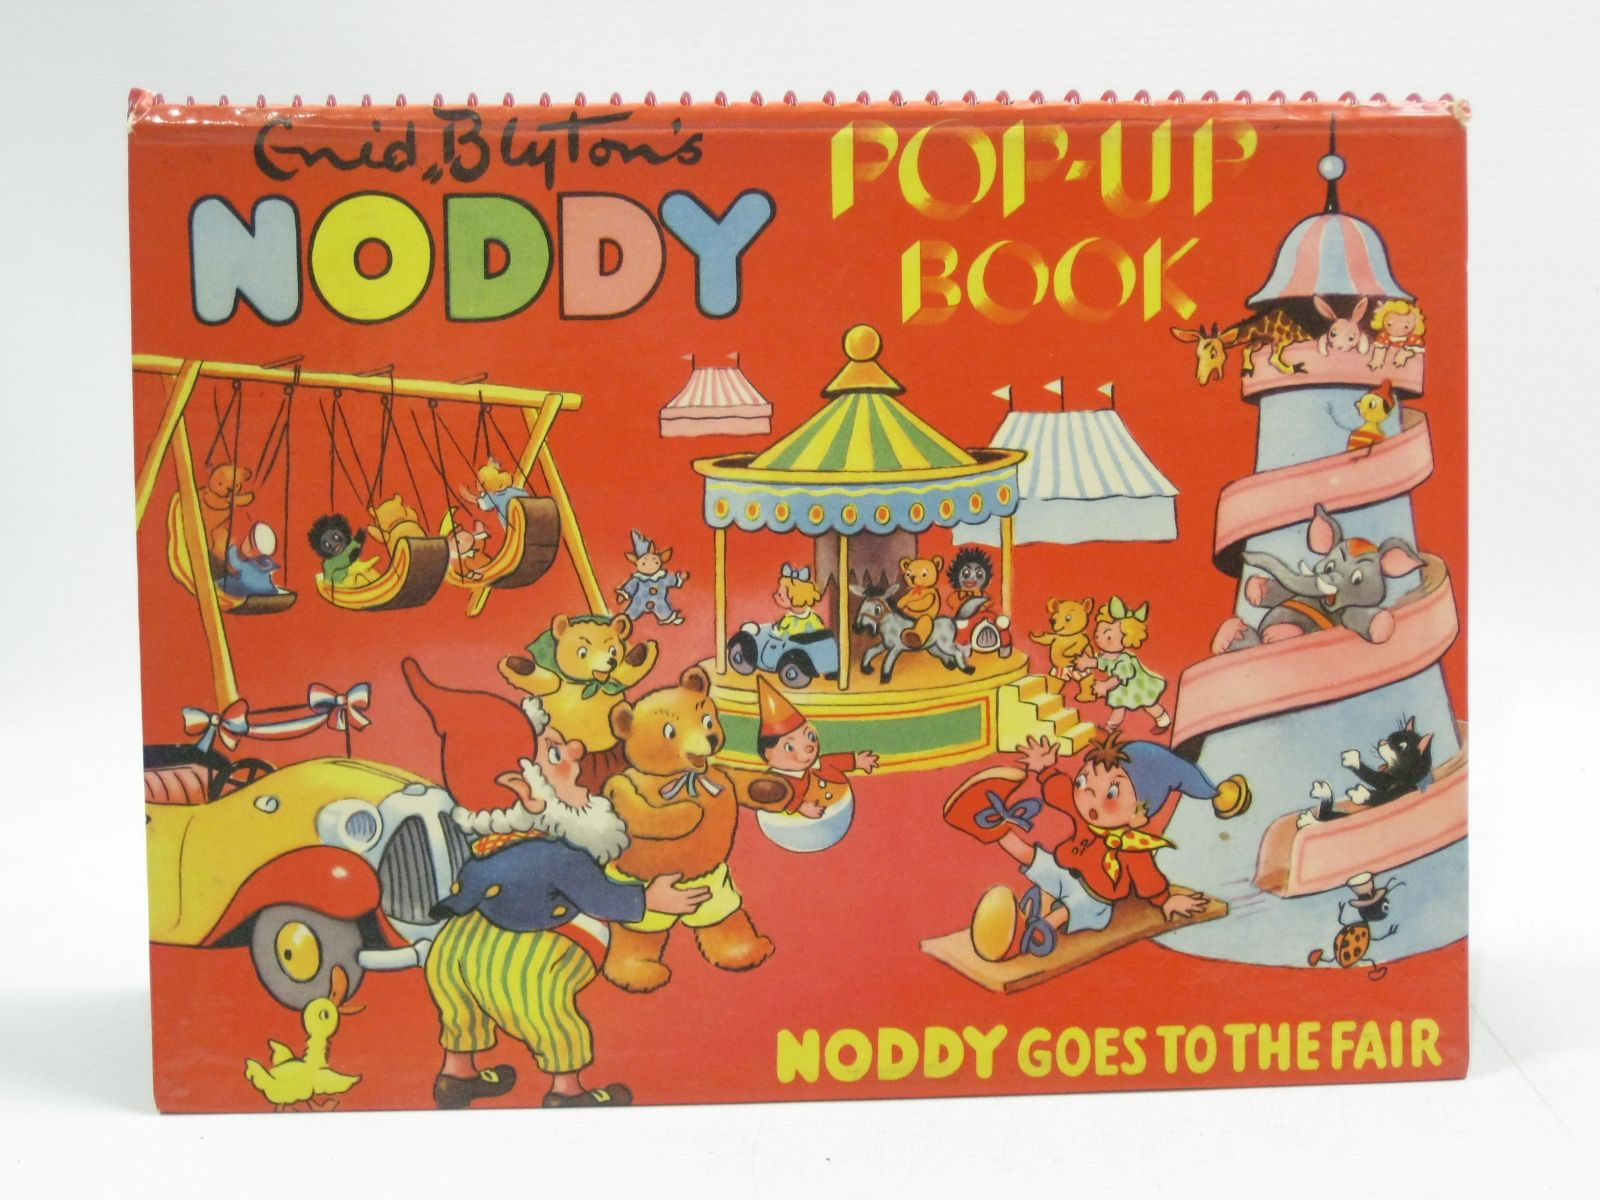 Photo of NODDY POP-UP BOOK NODDY GOES TO THE FAIR written by Blyton, Enid published by Sampson Low, Marston & Co. Ltd., C.A. Publications, Ltd. (STOCK CODE: 1404599)  for sale by Stella & Rose's Books